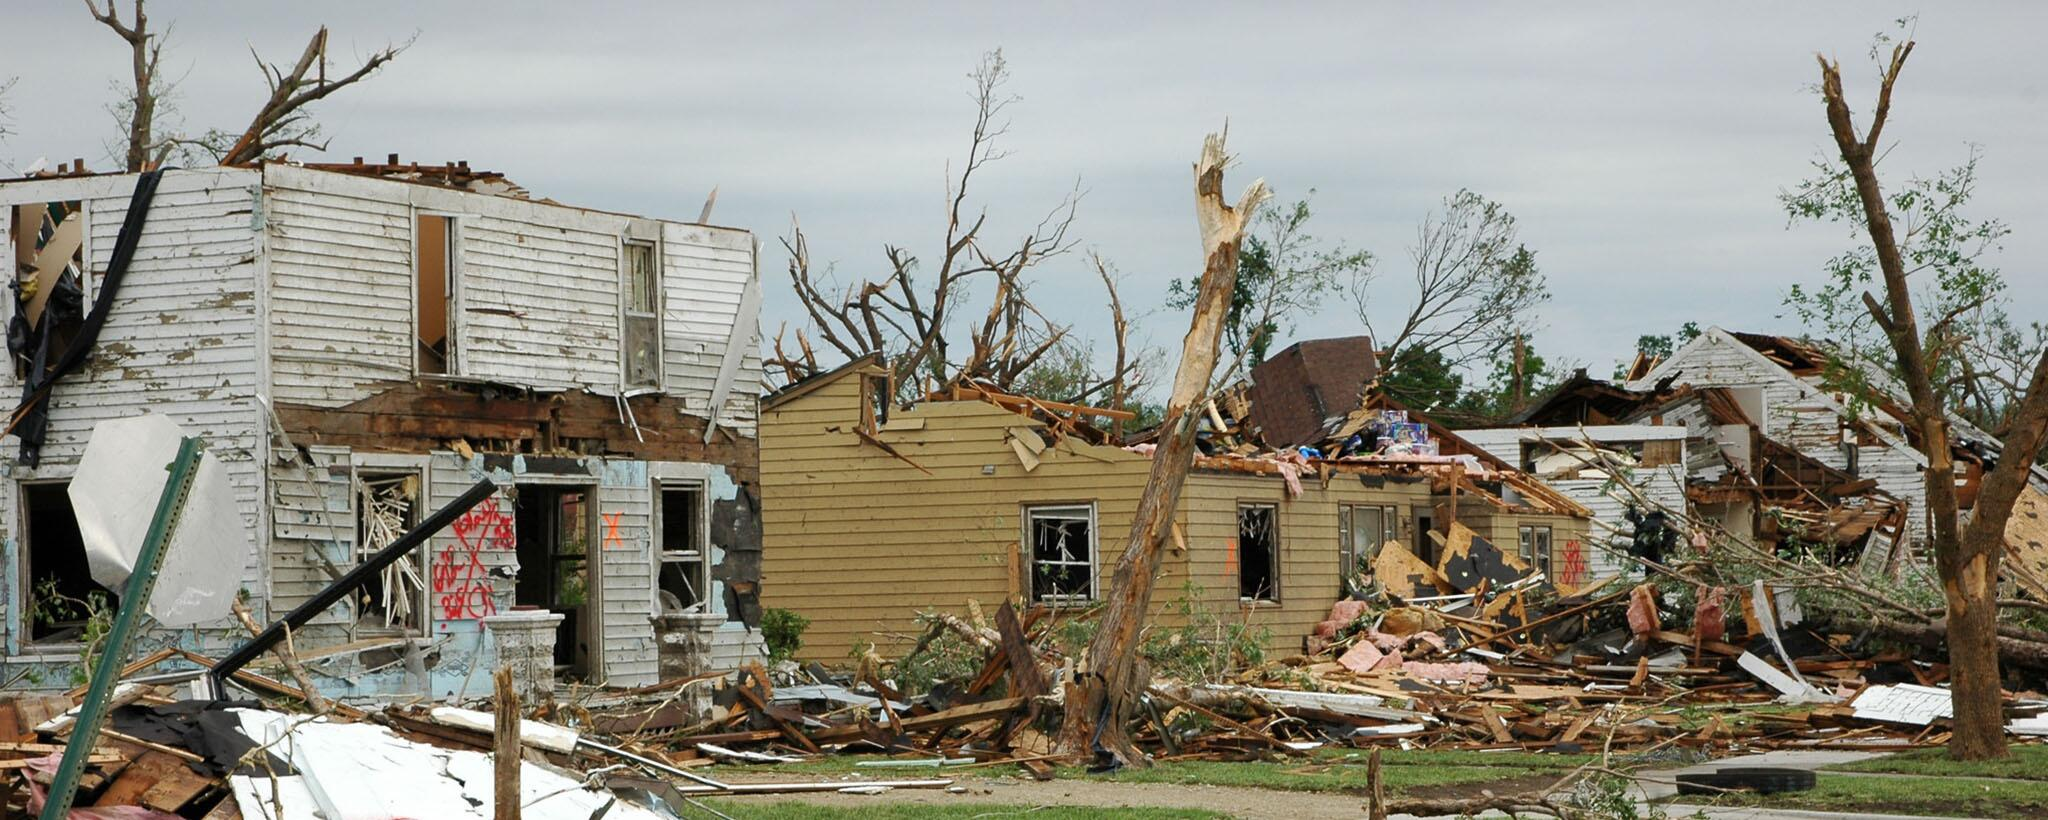 Three houses severely damaged from a tornado.